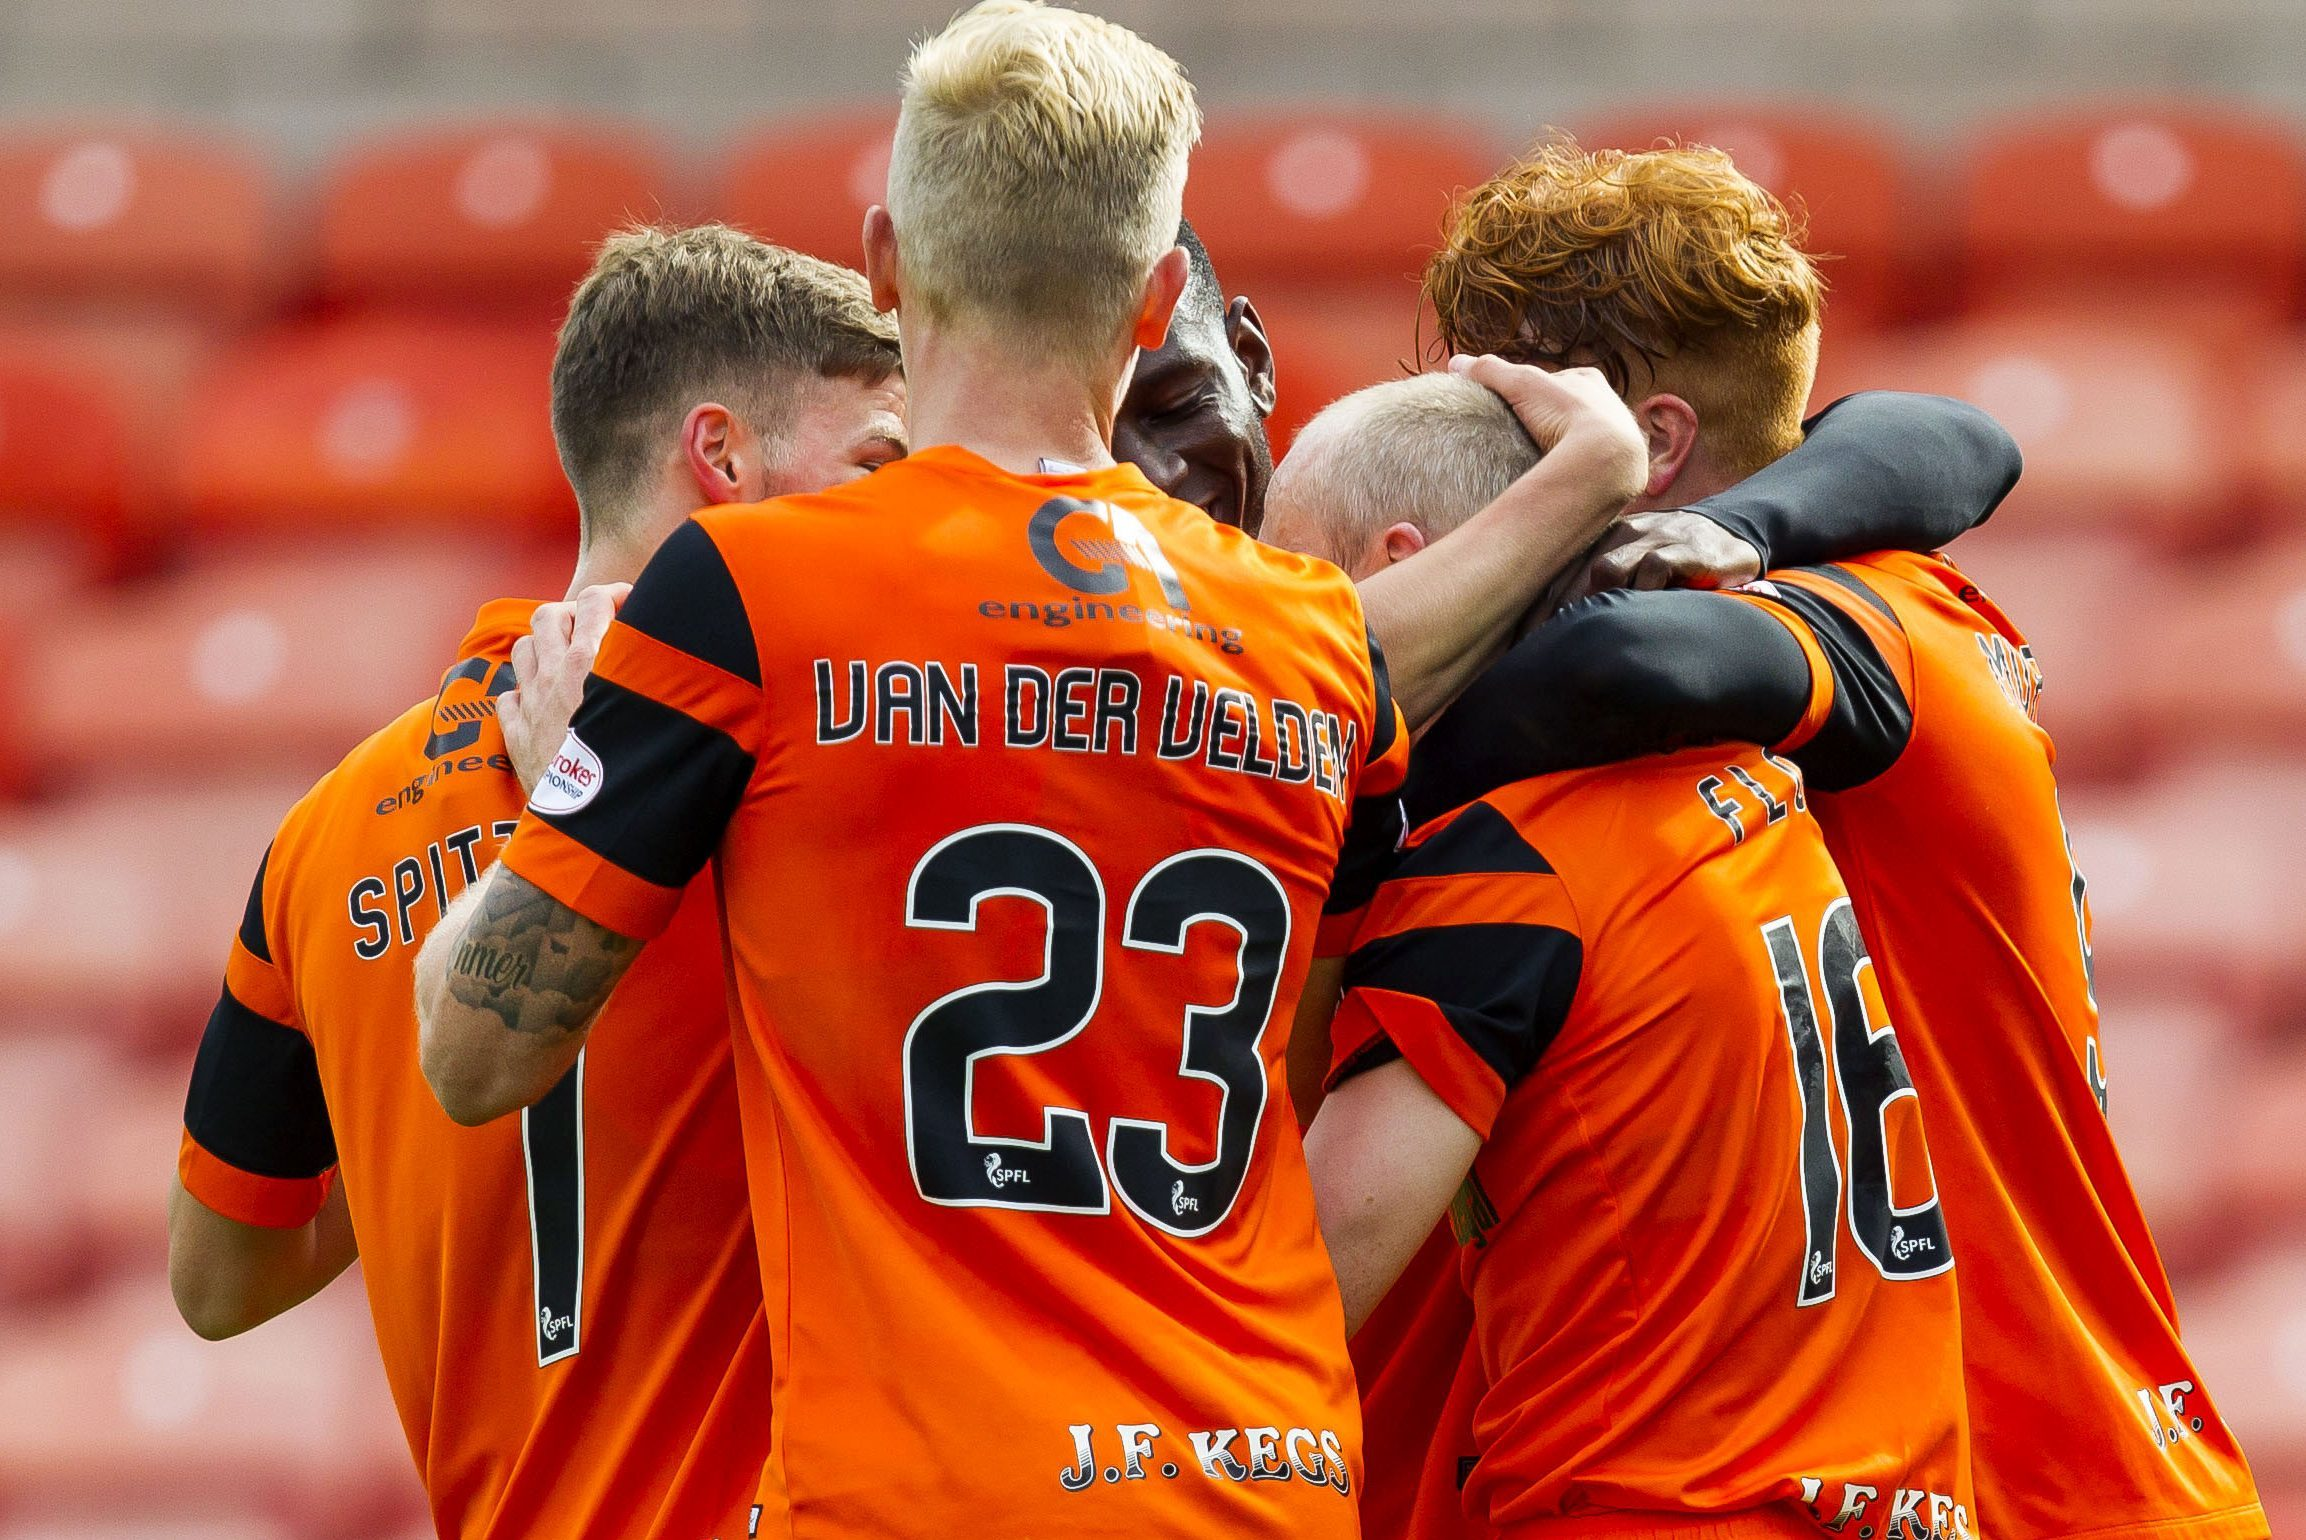 The United players celebrate after Willo Flood scored their third goal.